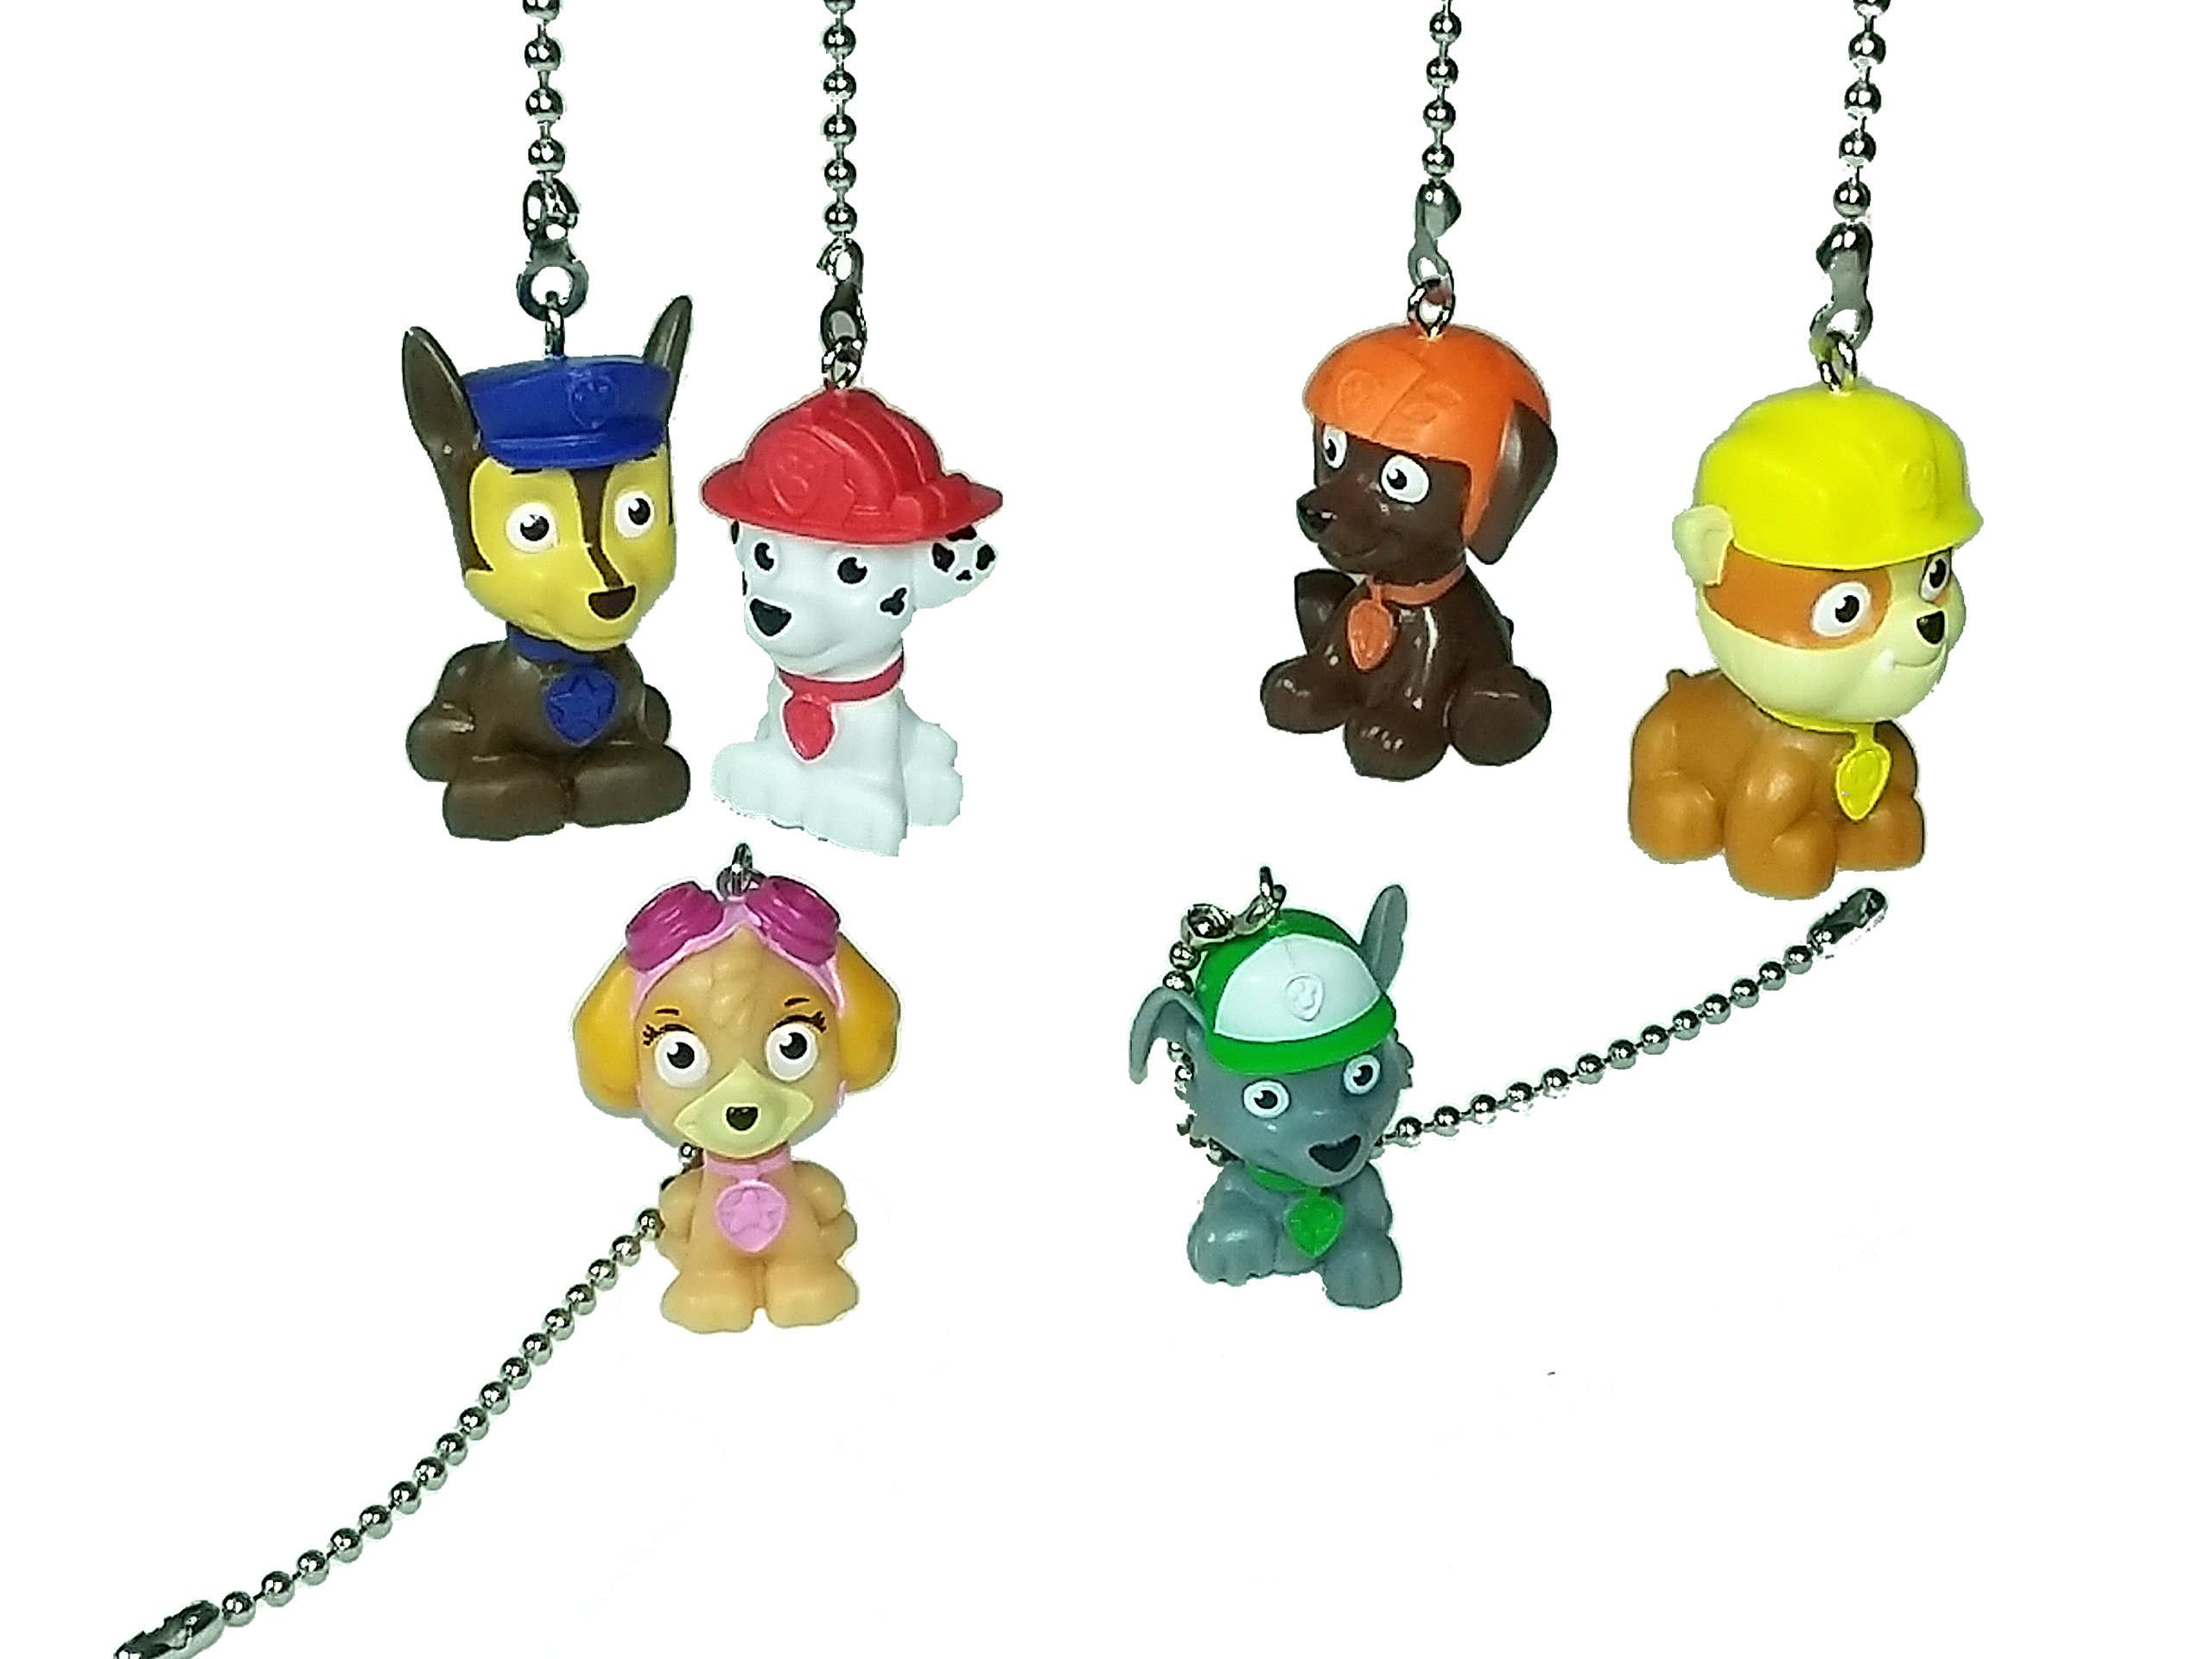 Paw Patrol Ceiling Fan Pull Chain by Wooden Androyd Studio - Kids Room Child Nursery Decor (All 6 Character Set)